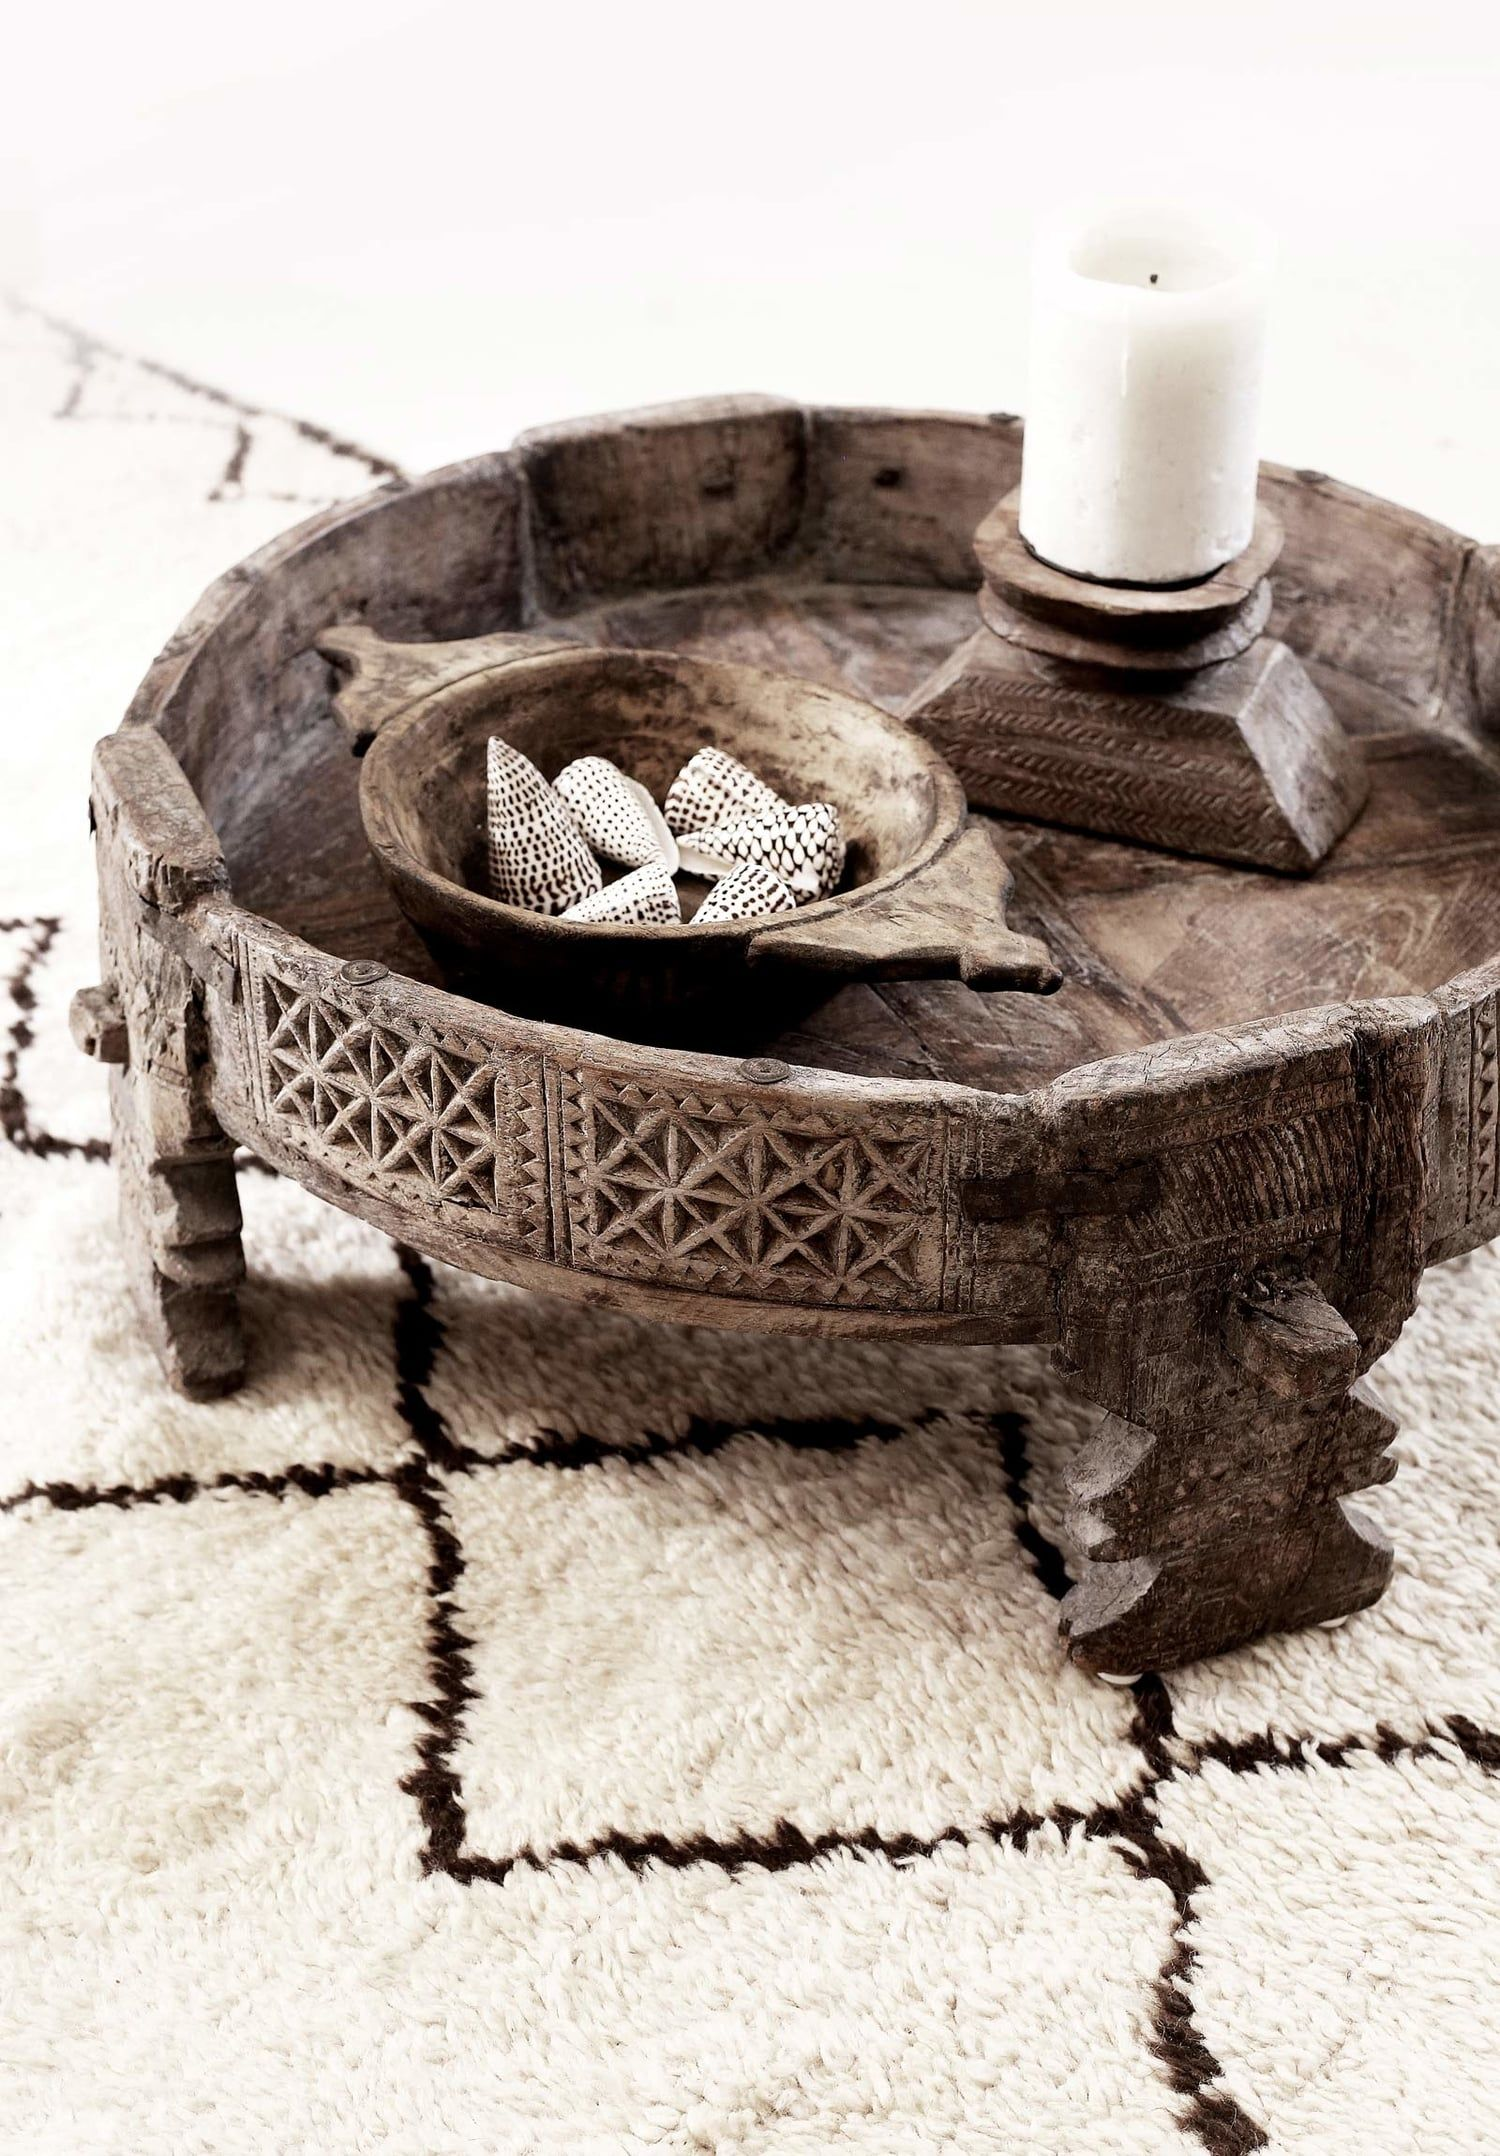 0d6cce0ee83788500220b5314131de37 Top Result 50 Luxury Black and White Coffee Table Image 2017 Shdy7